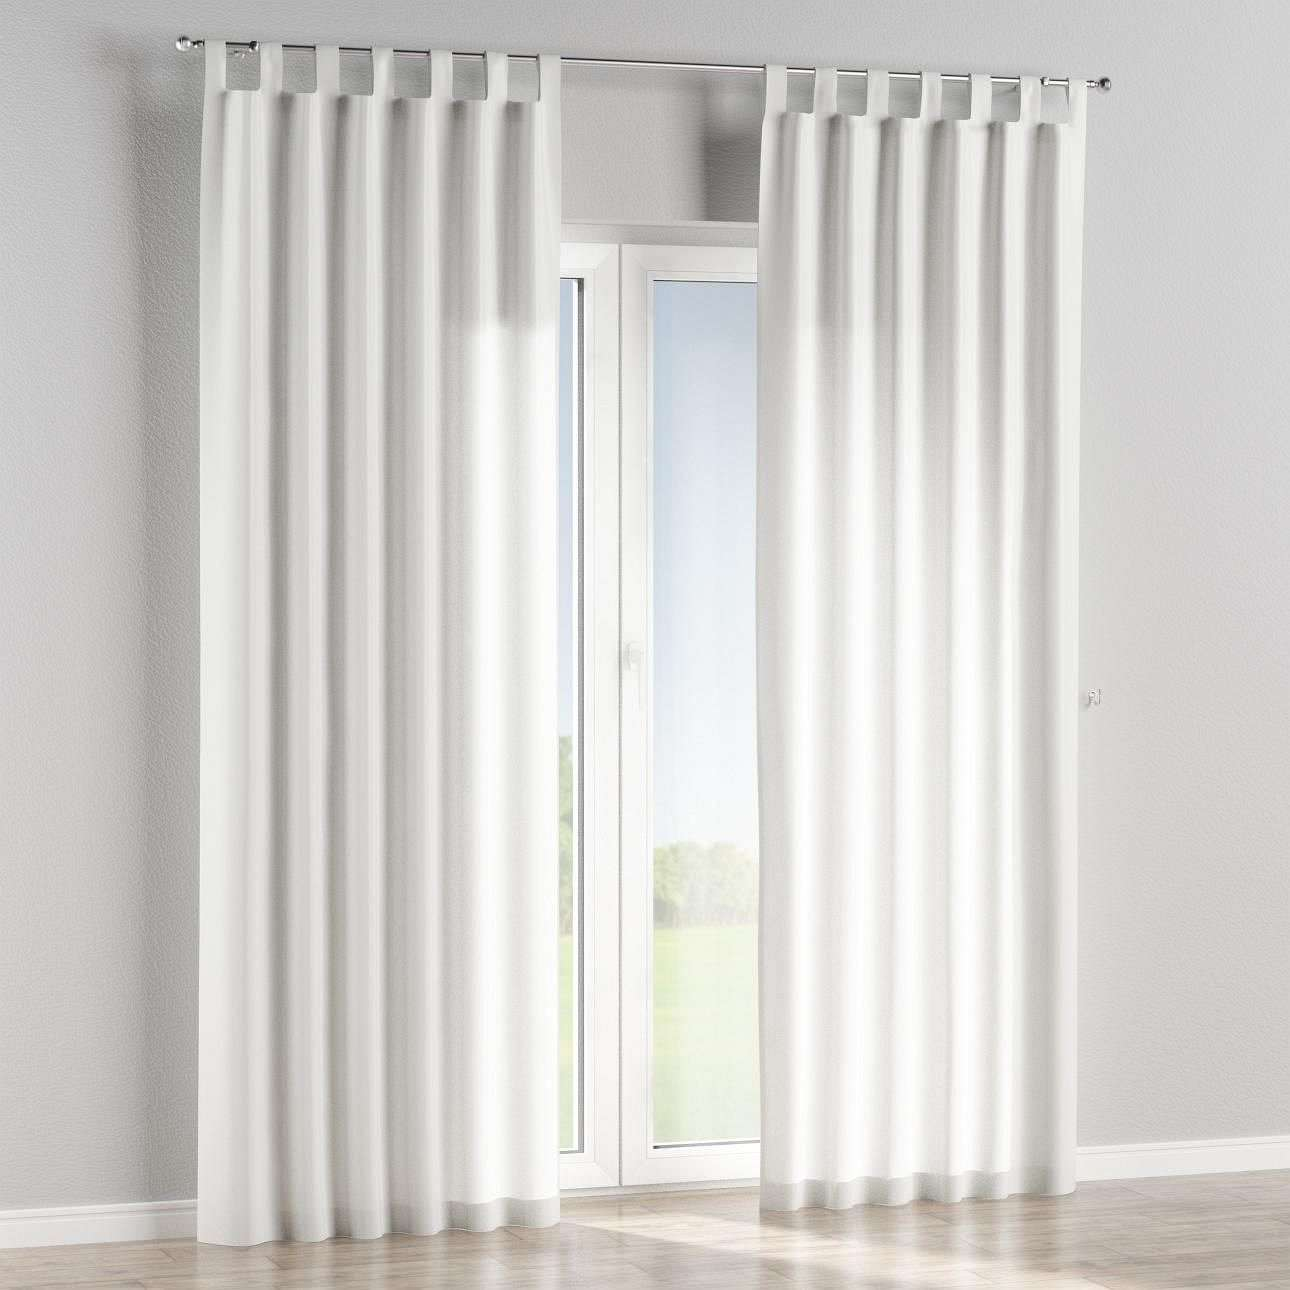 Tab top curtains in collection Christmas , fabric: 629-22